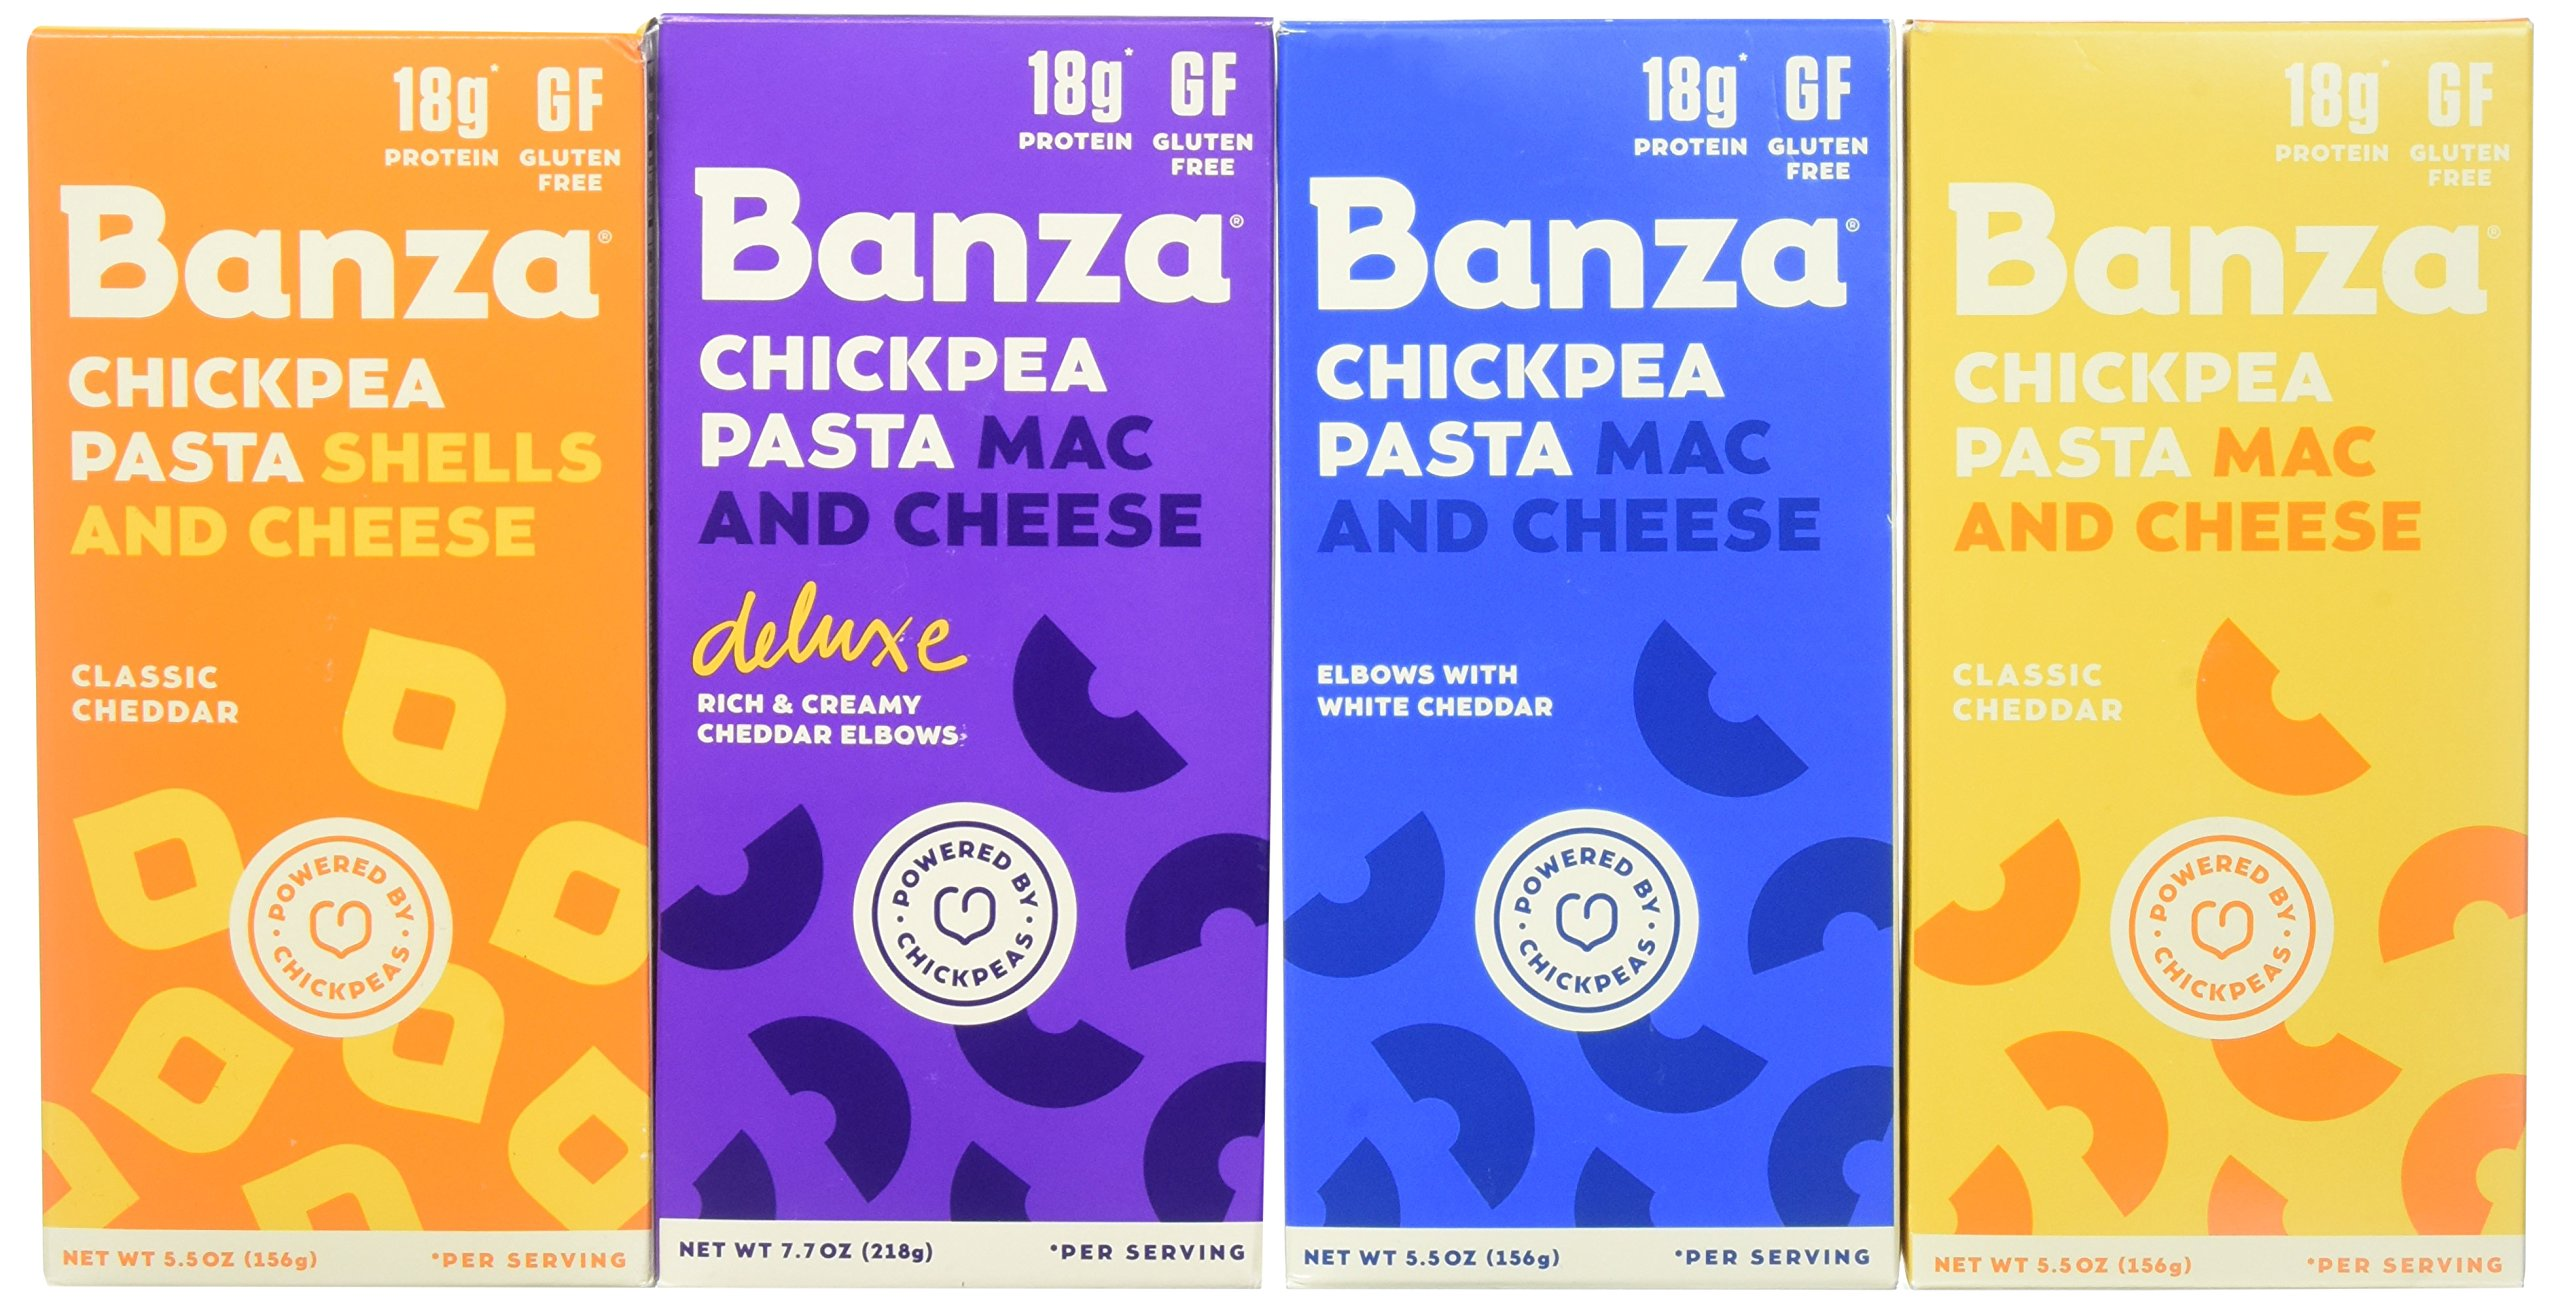 Banza Chickpea Pasta Mac & Cheese Variety Case (Pack of 6)